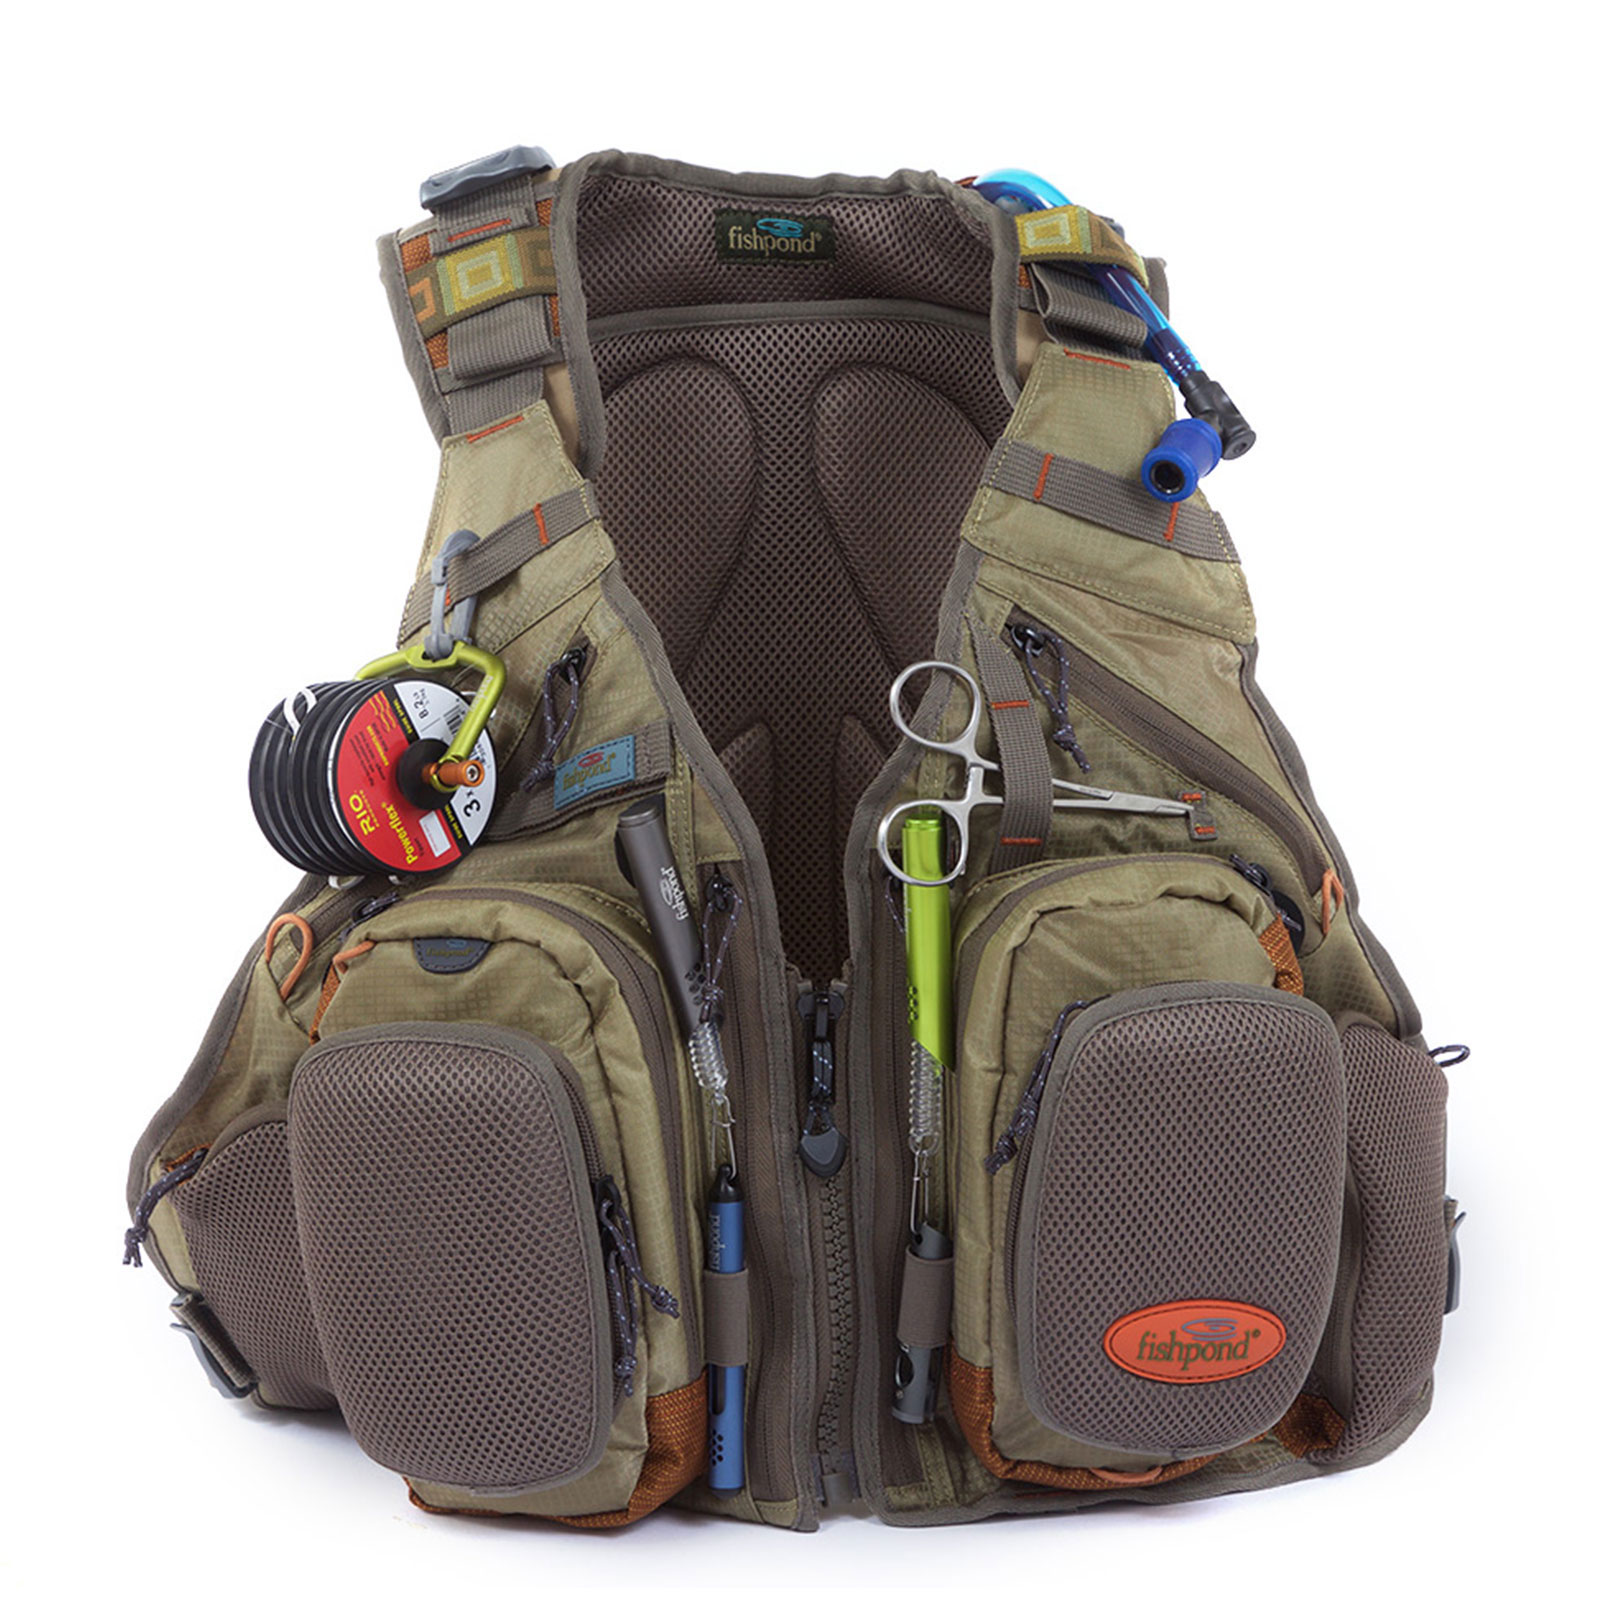 Fishpond wasatch tech pack fly fishing vests ebay for Fly fishing packs